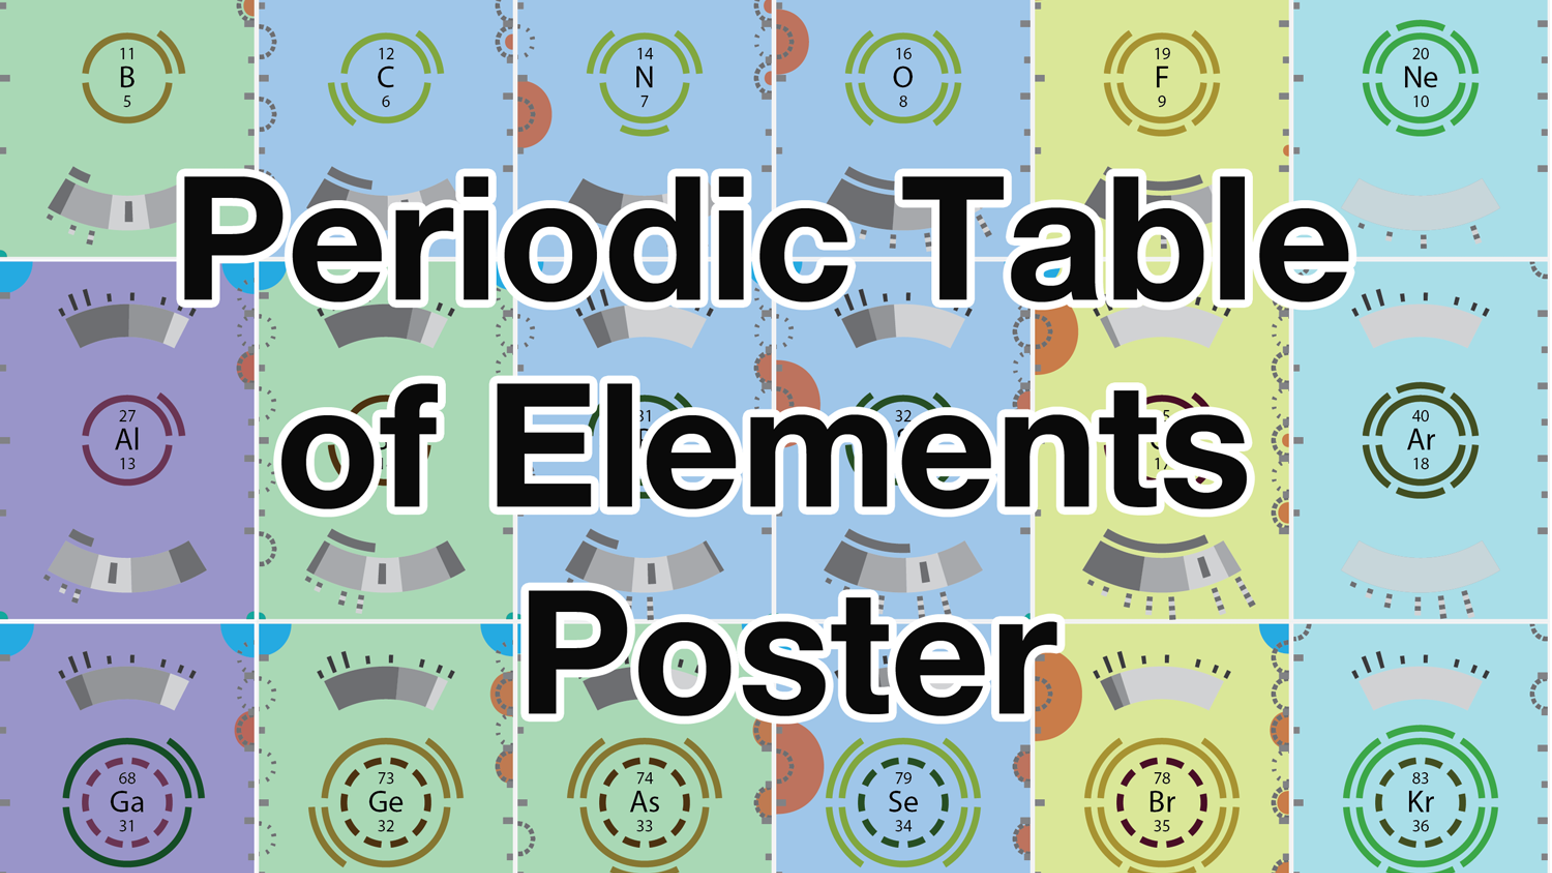 The periodic table of elements poster by sam price kickstarter a periodic table of elements that is easy to understand and visually appealing to look urtaz Choice Image